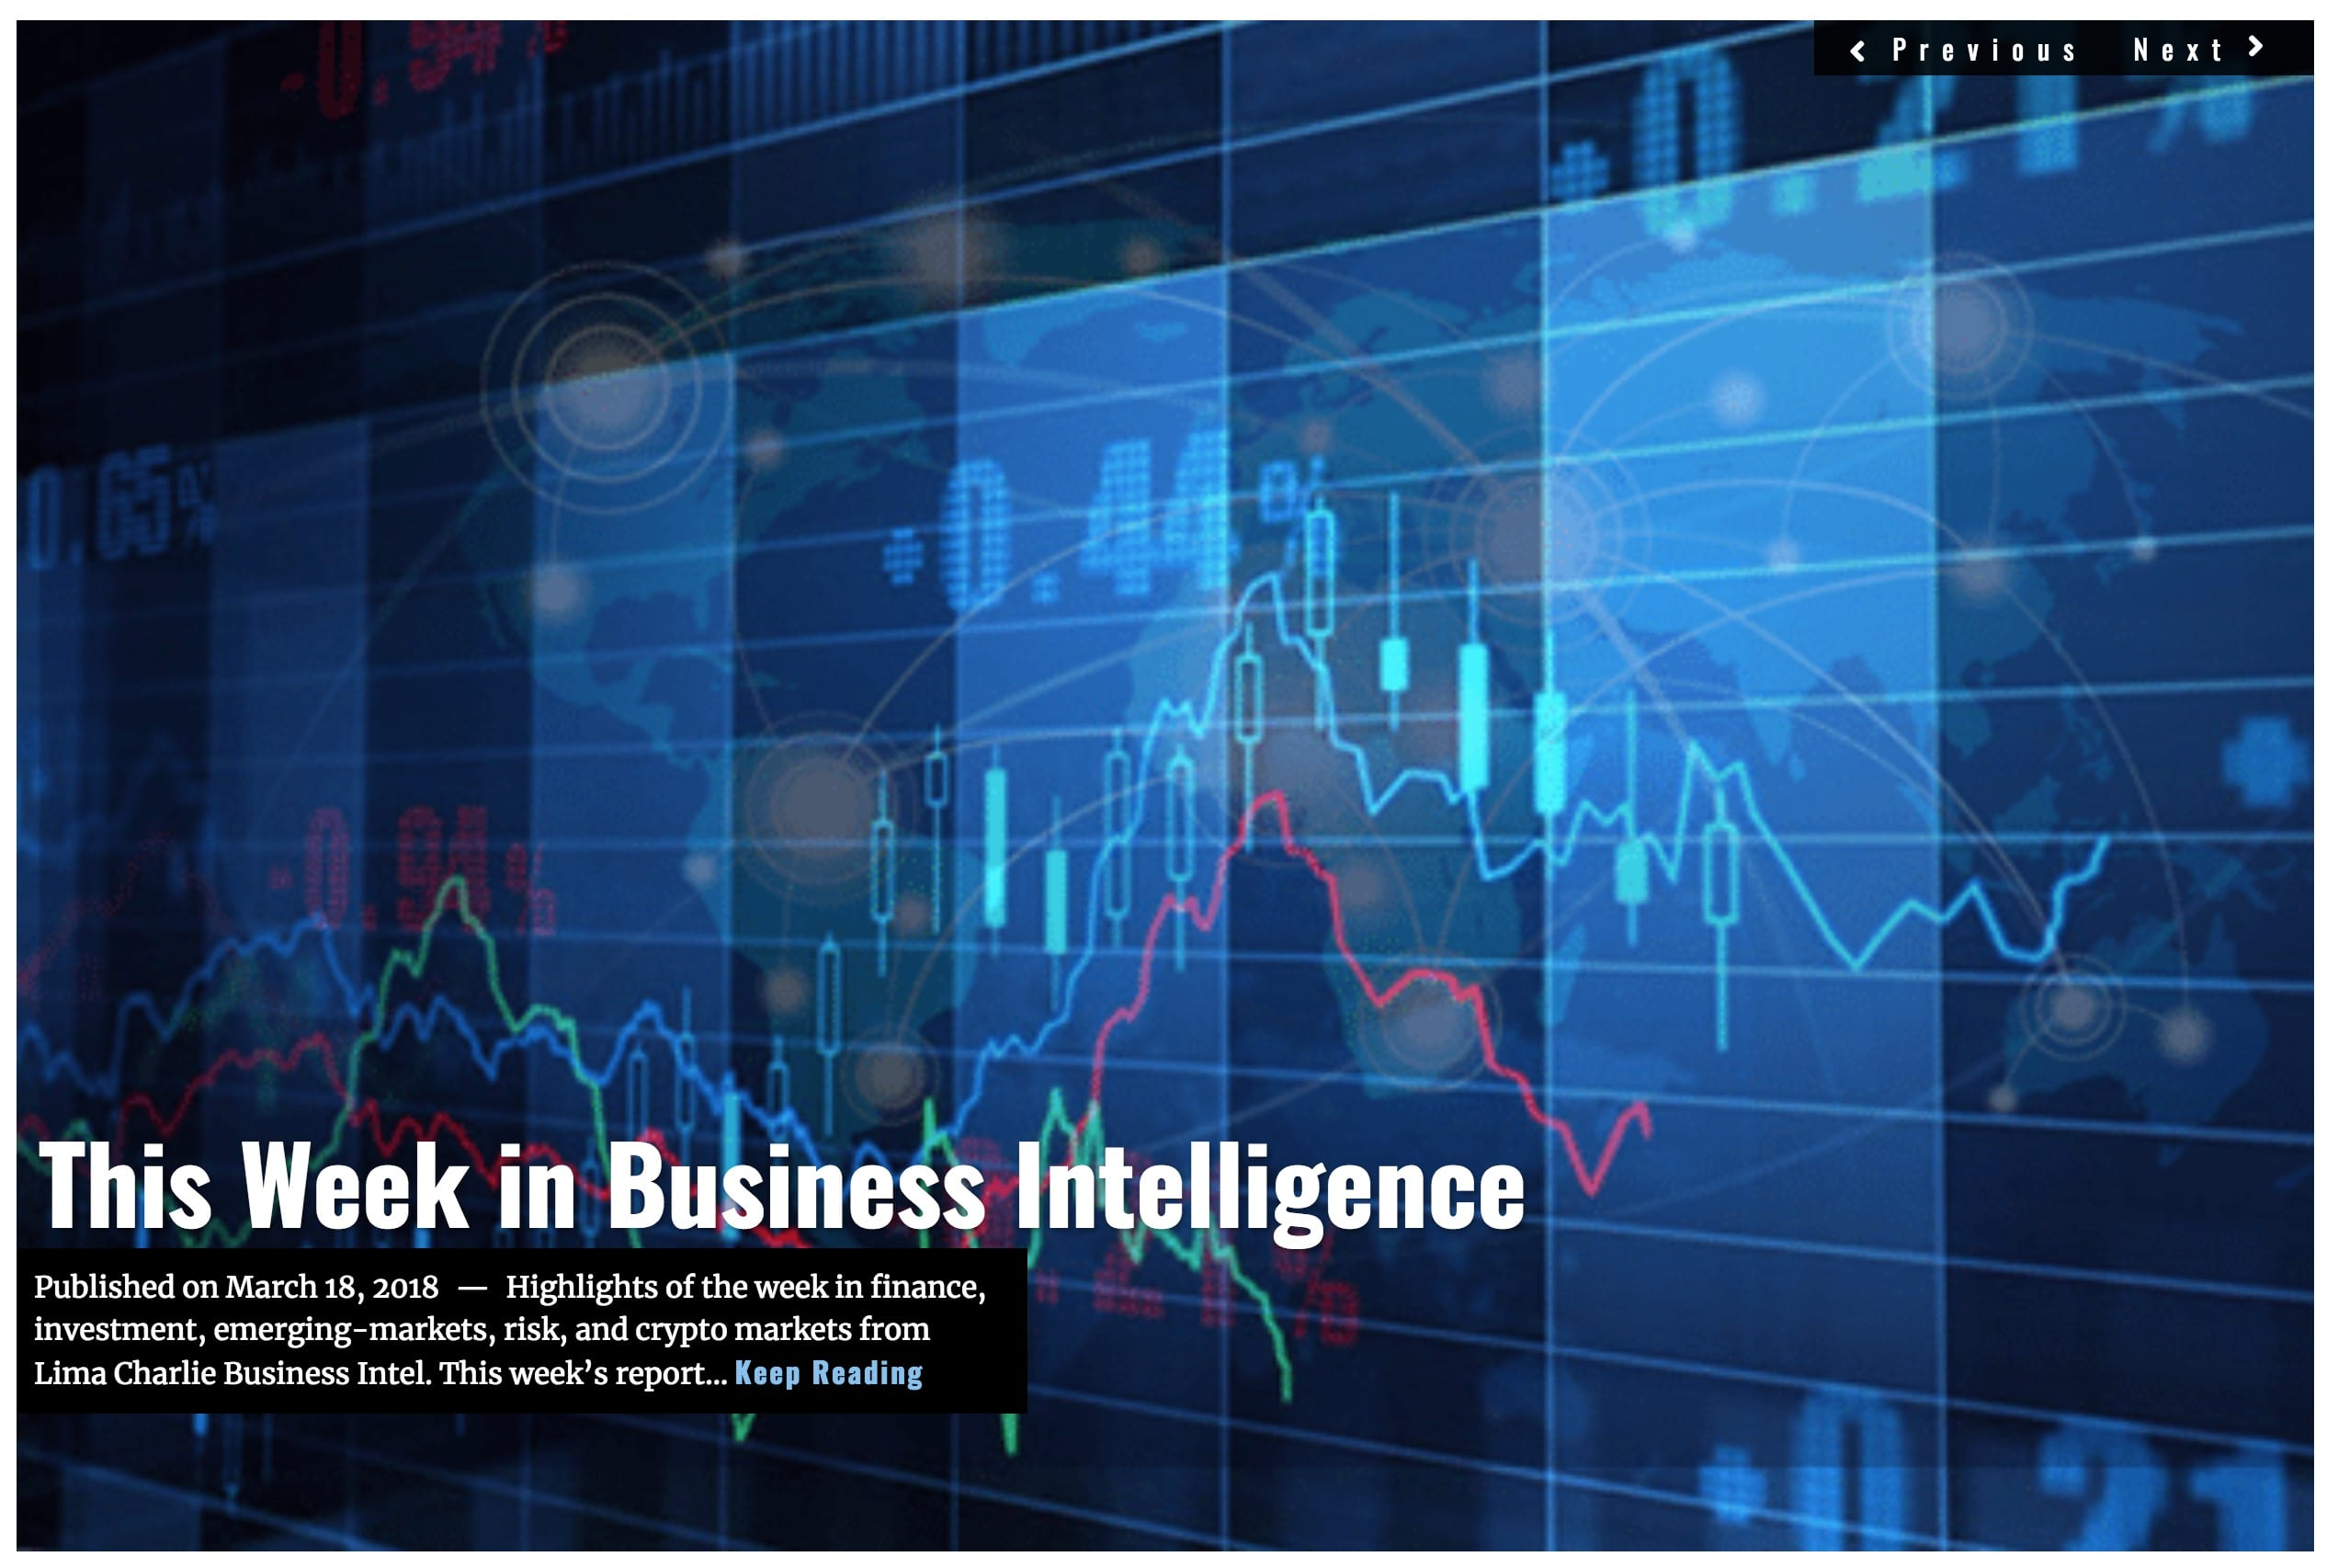 Image Lima Charlie News Headline This Week in Business Intelligence MAR 18 2018